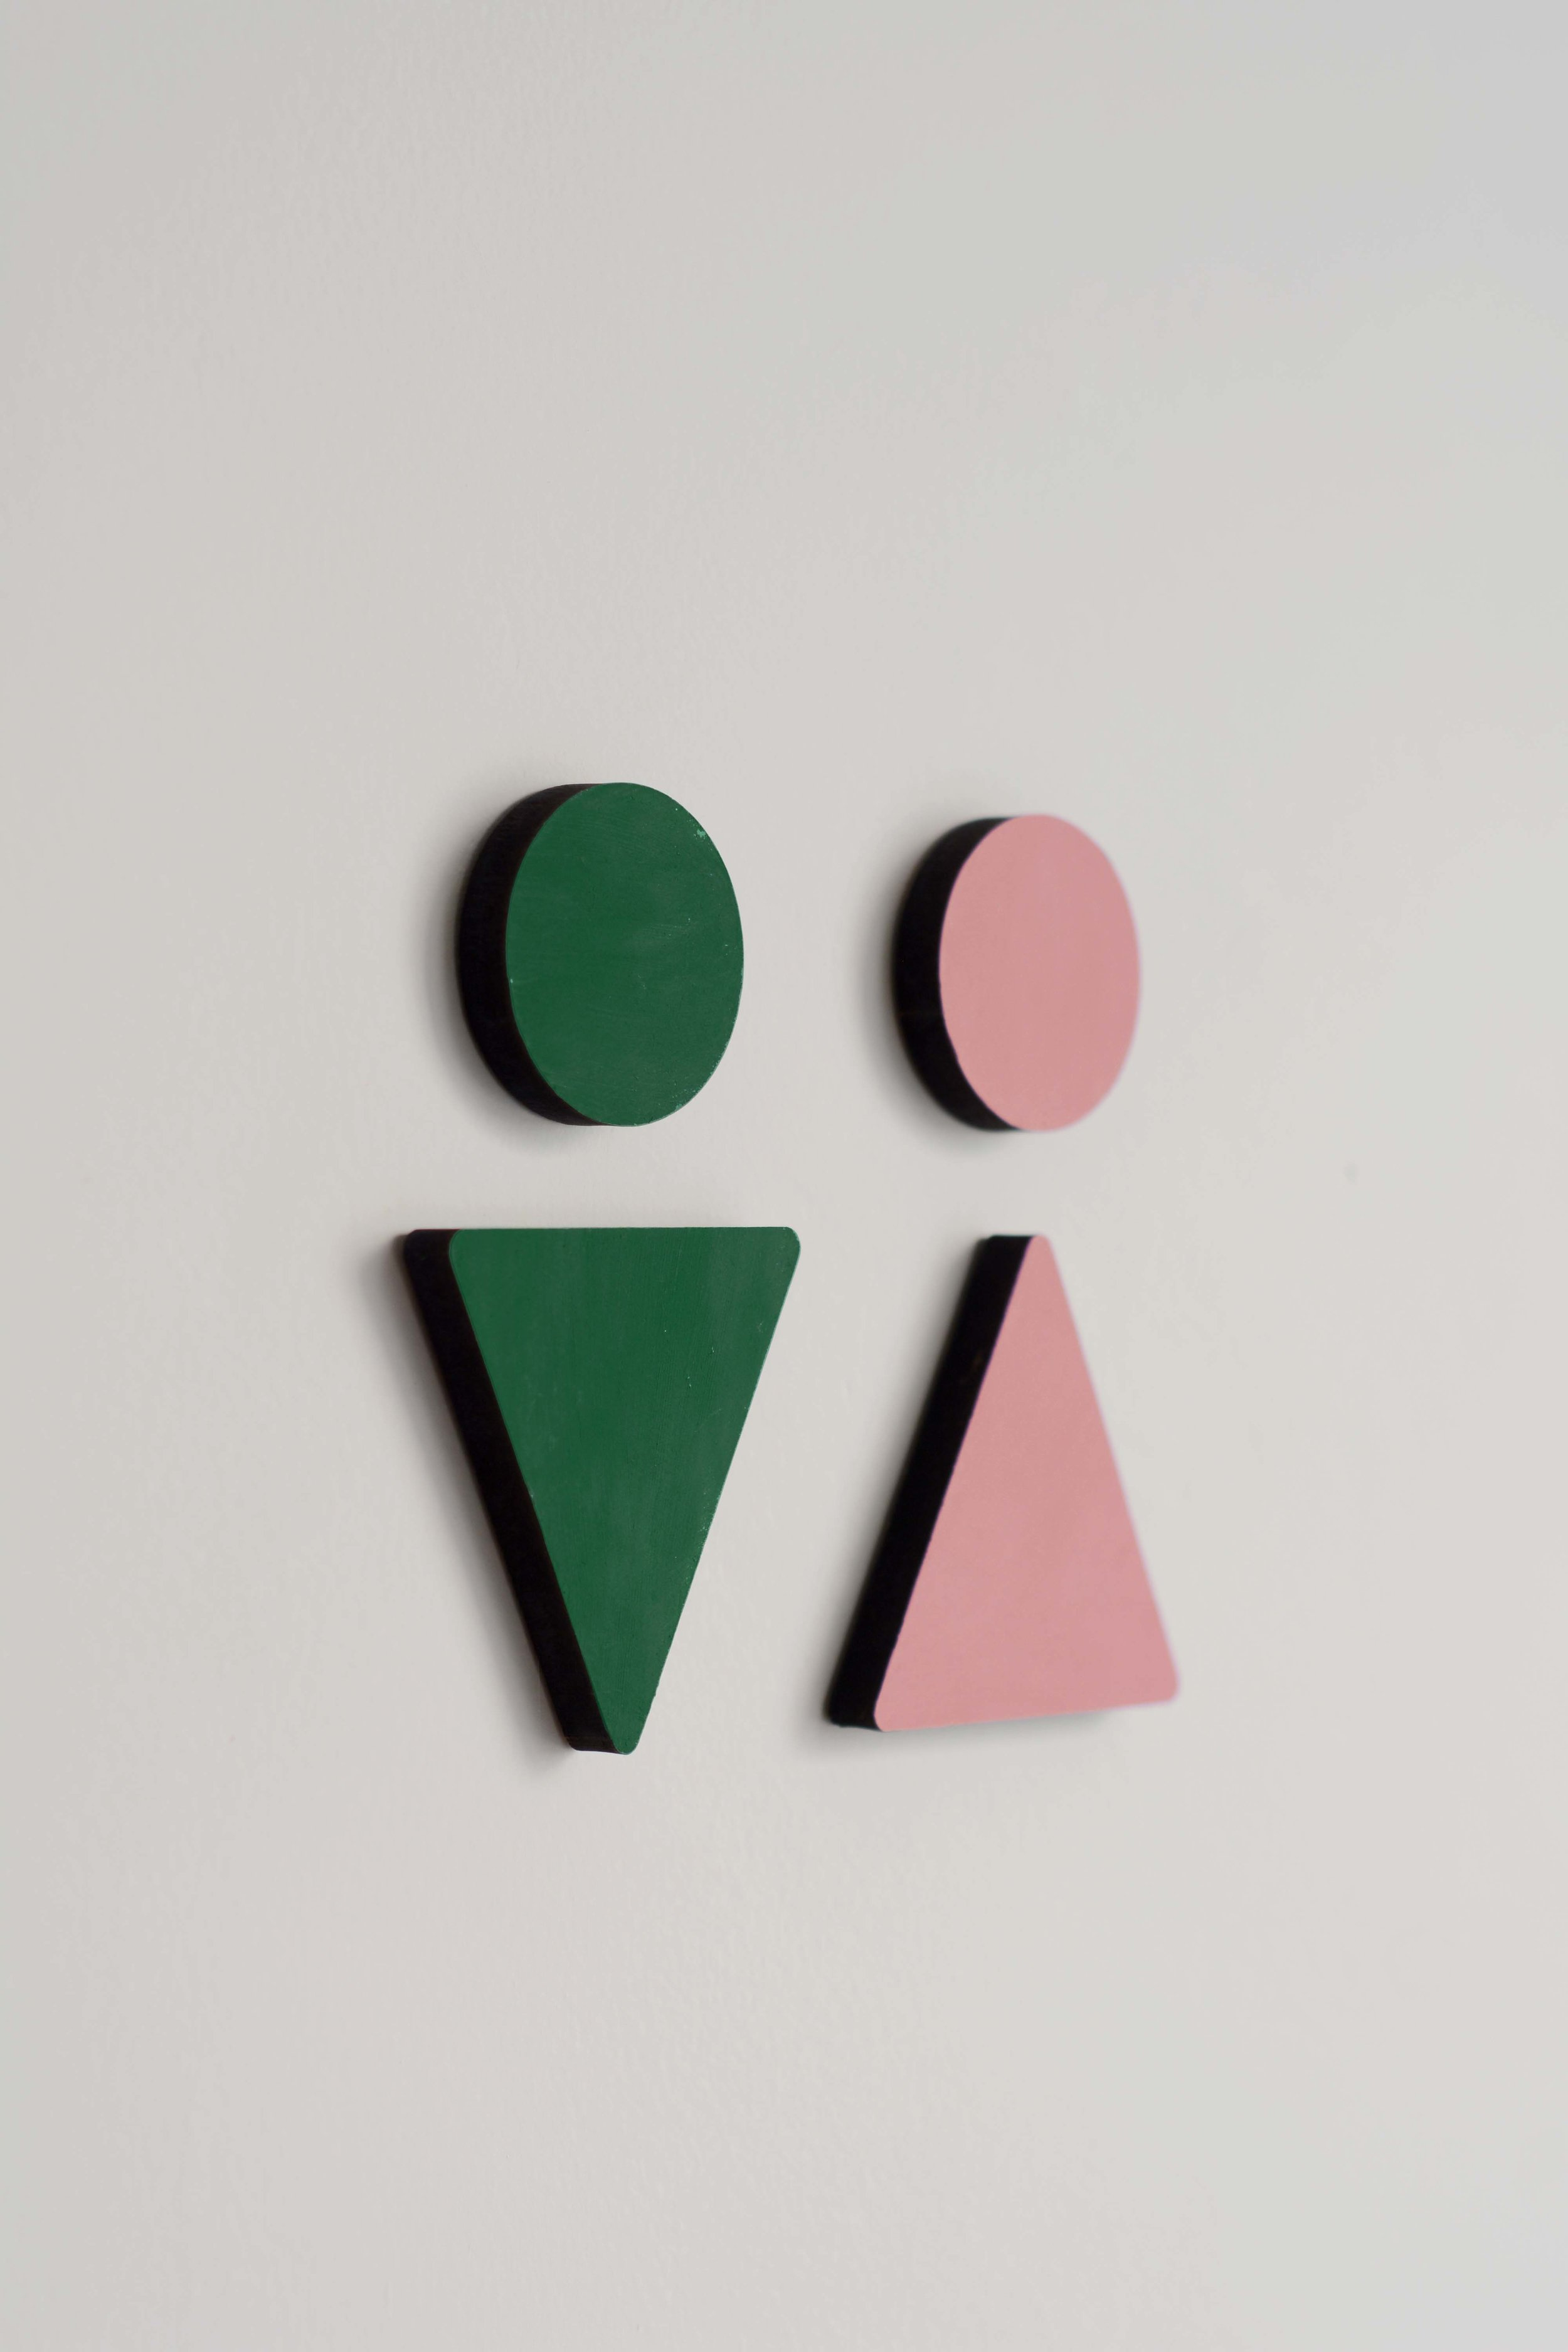 - The shapes from the pattern are used all around the hotel in signage, stationary, and interiors.